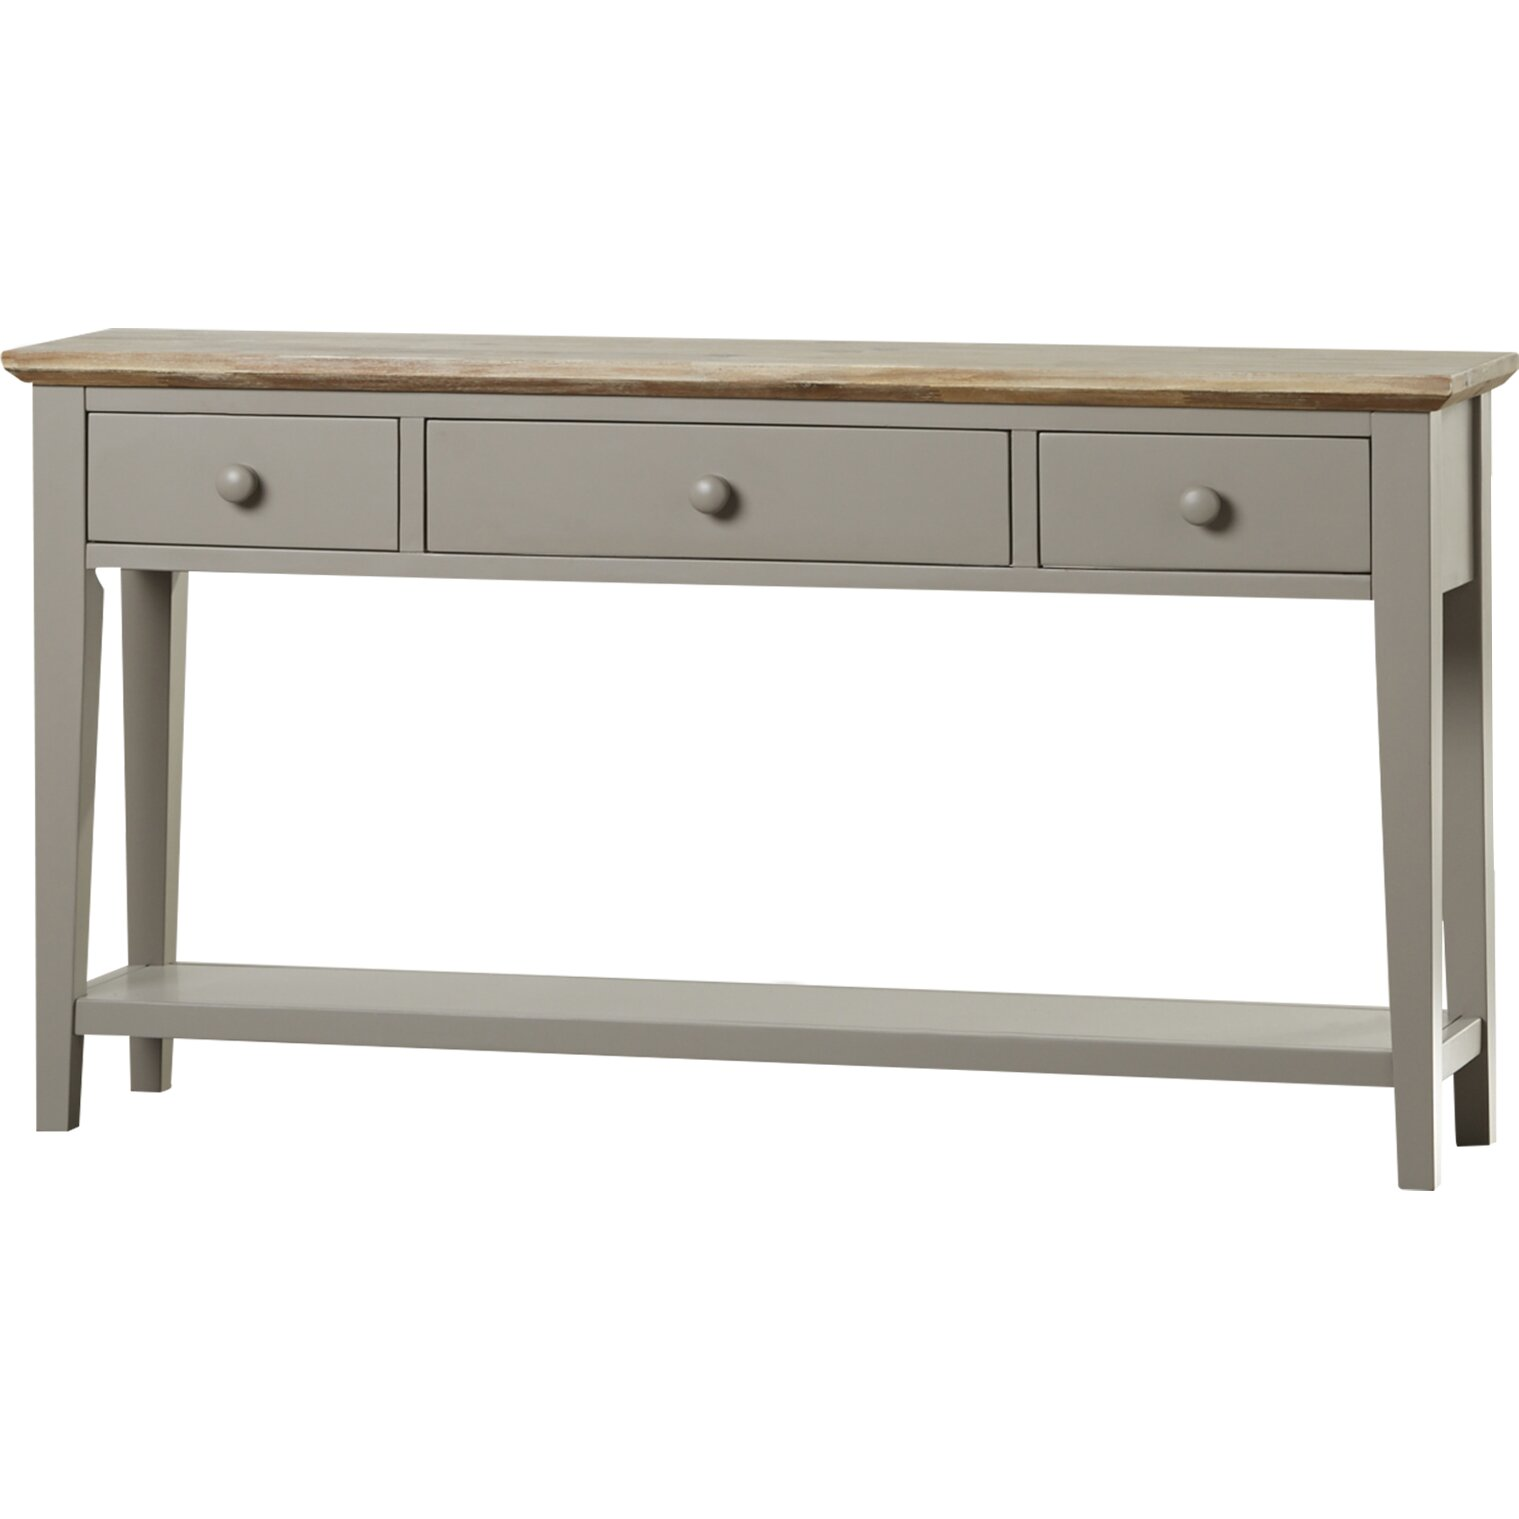 lily manor alban console table reviews wayfair uk. Black Bedroom Furniture Sets. Home Design Ideas